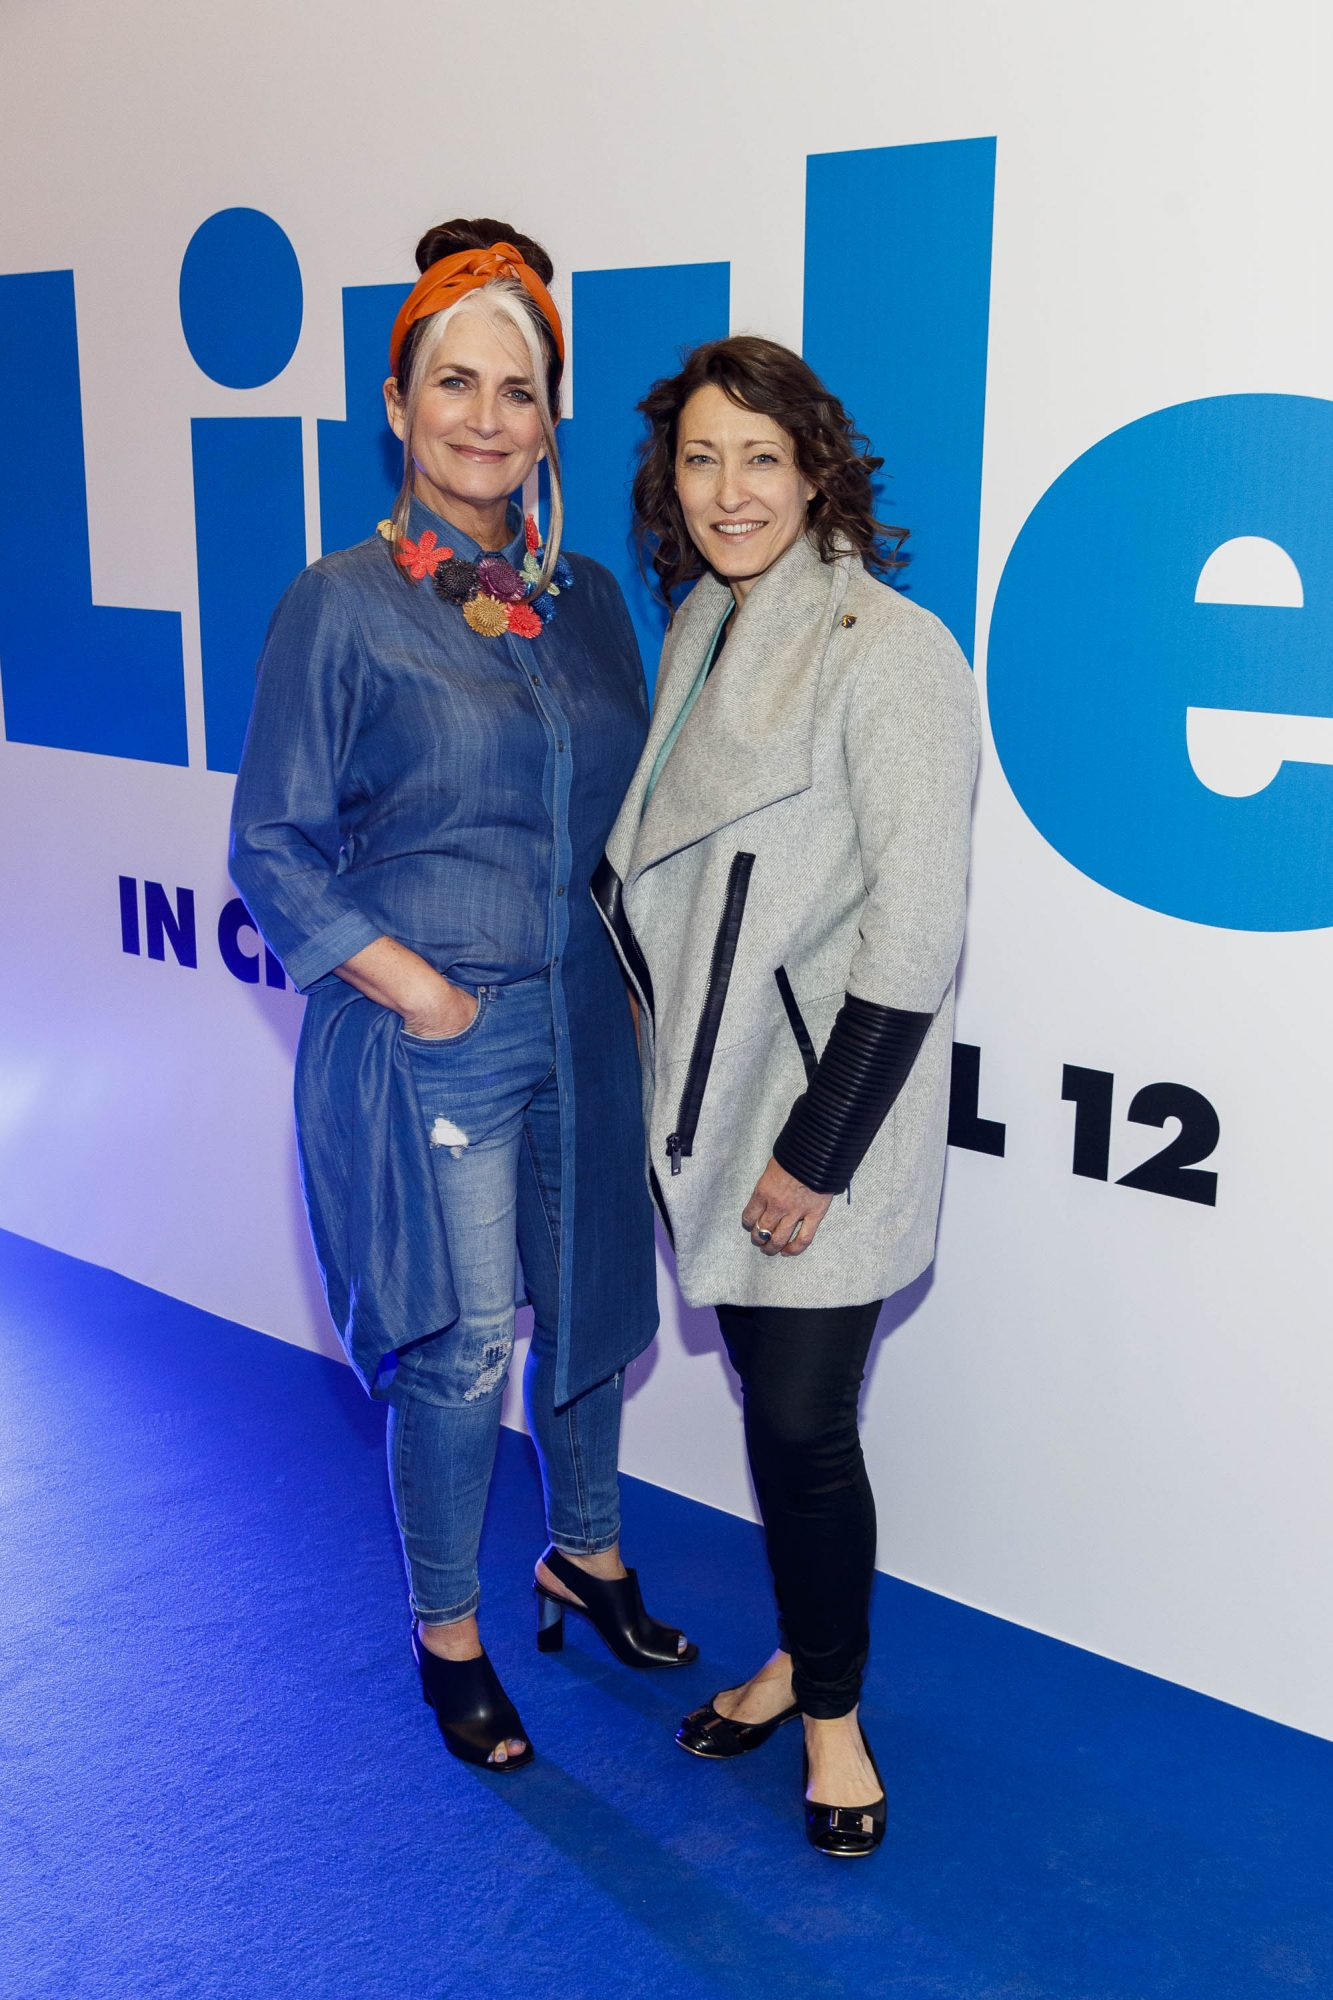 Cathy O'Connor and Jeannie Wenham pictured at a special preview screening of Little at Odeon Point Square, Dublin. Little, starring Girls Trip Regina Hall hits cinemas across Ireland this Friday April 12th. Picture Andres Poveda